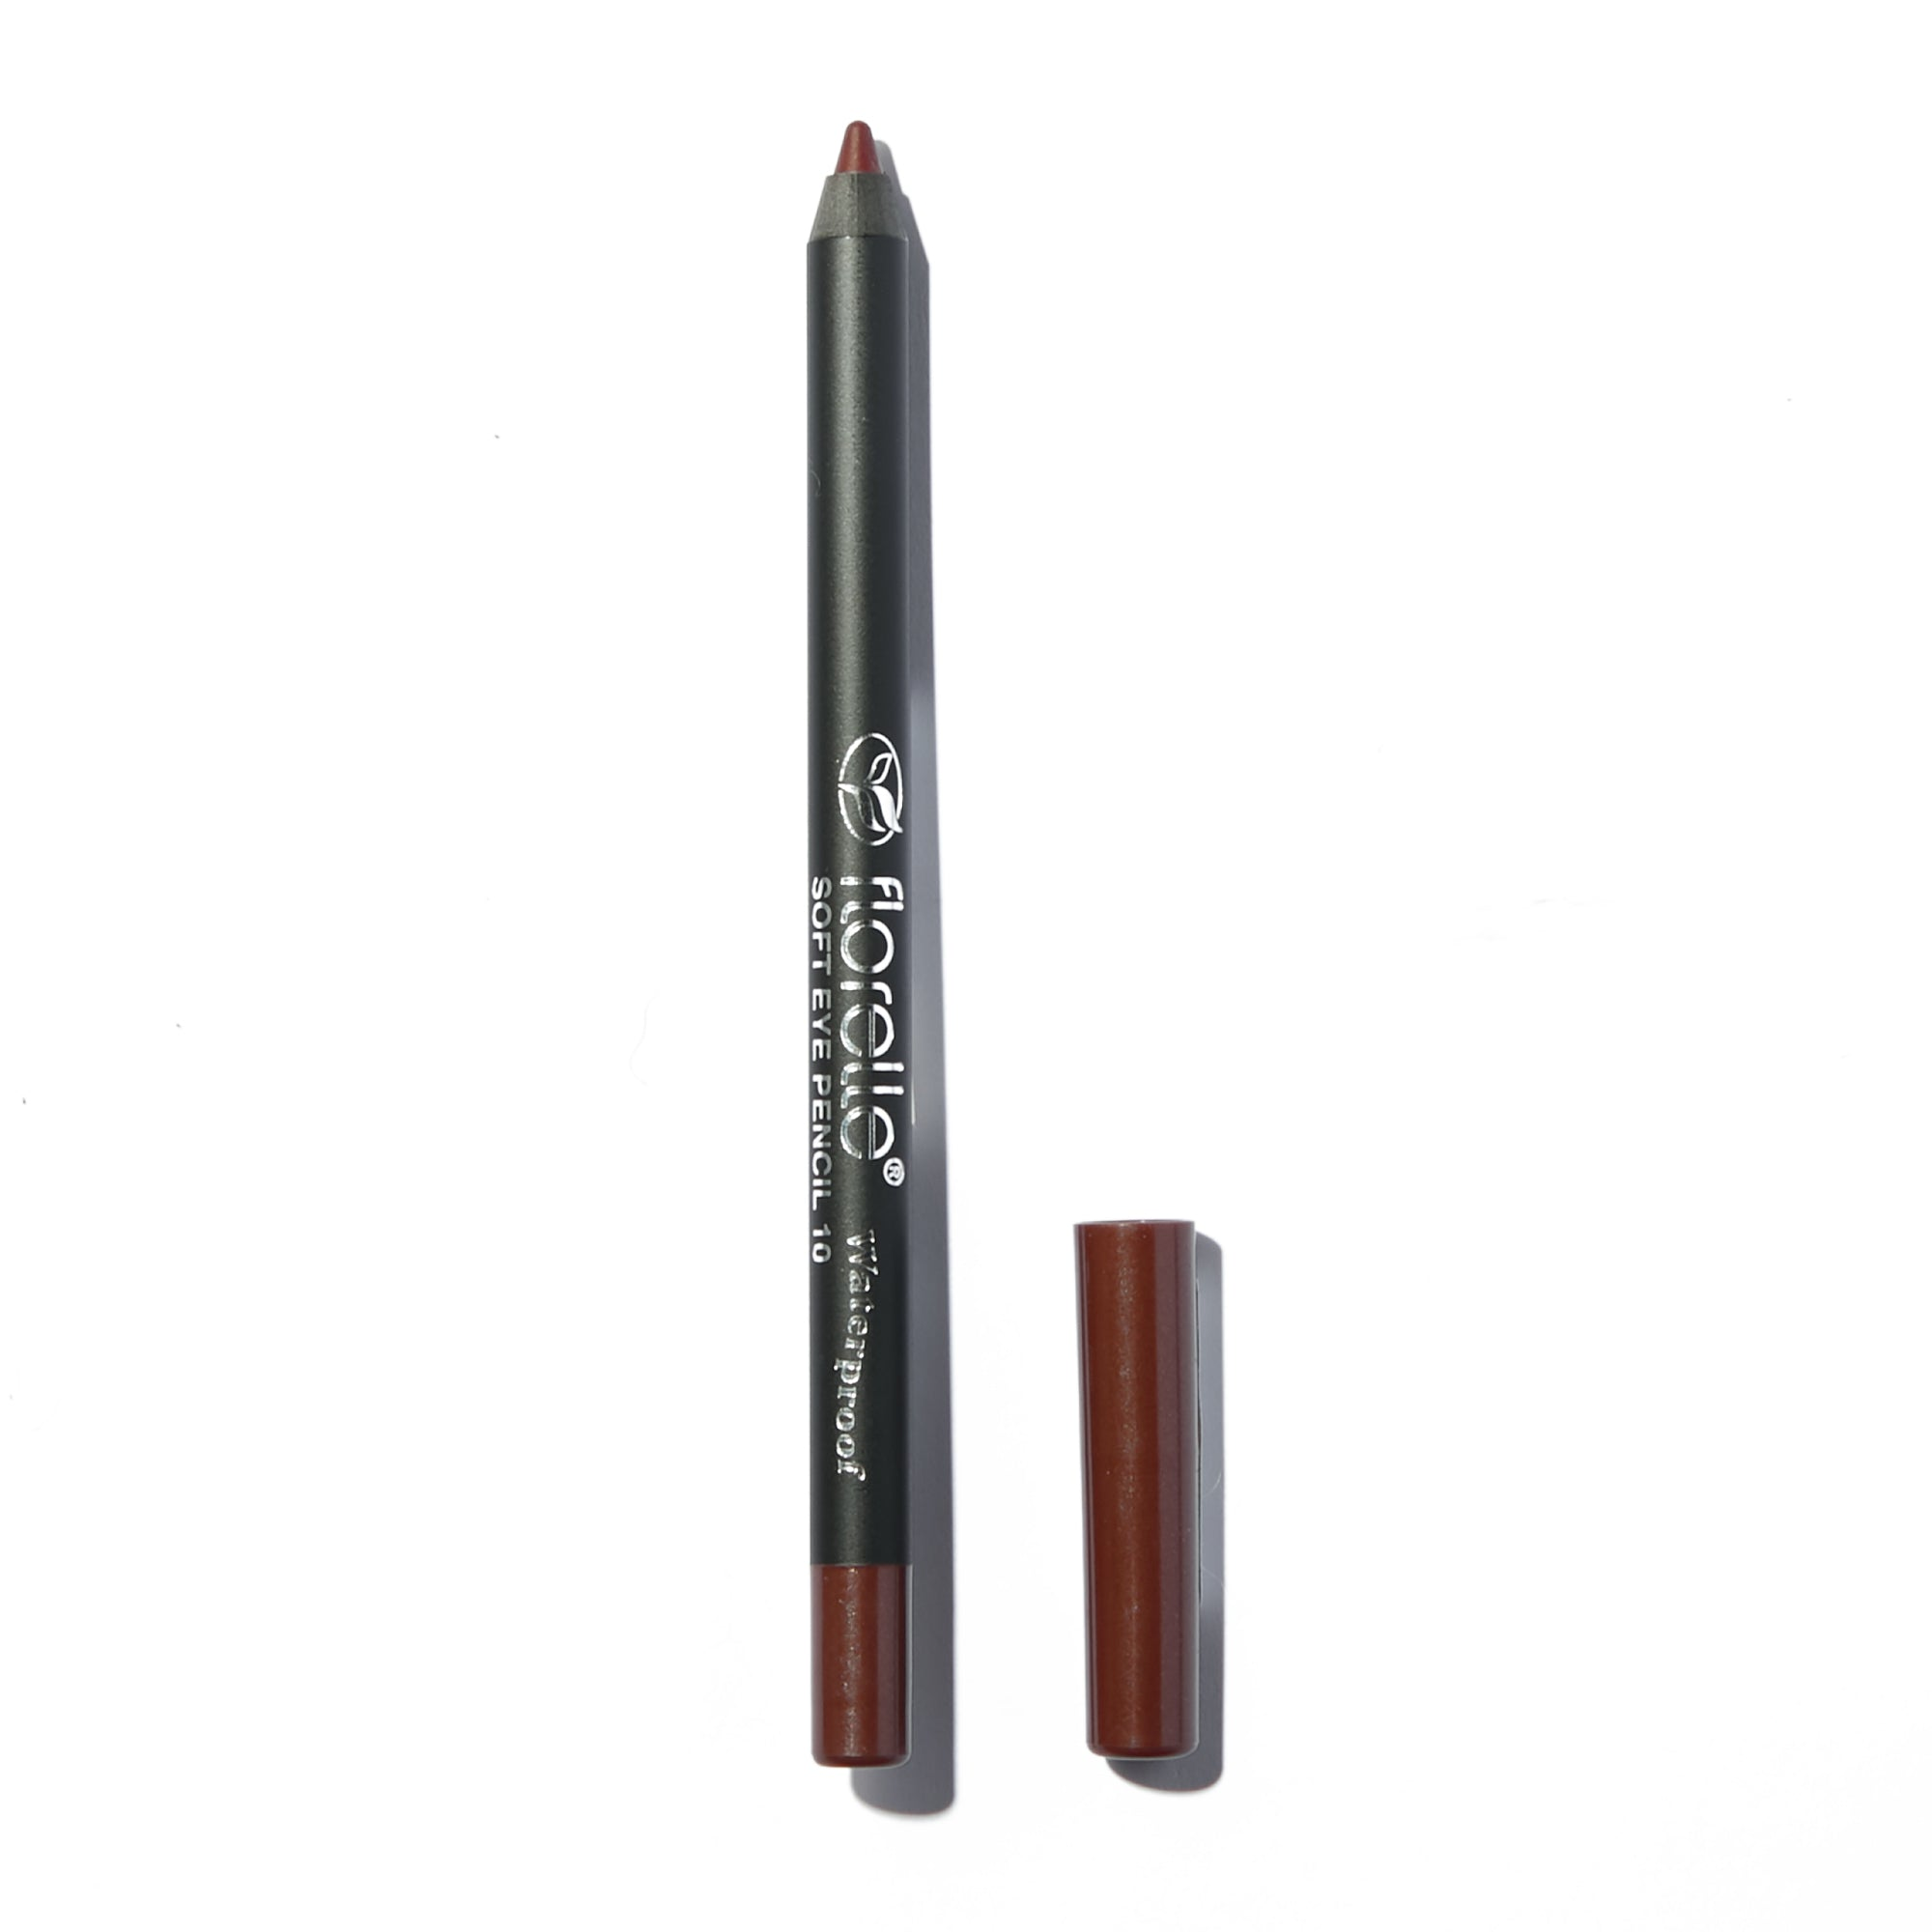 SOFT EYE PENCIL WATERPROOF